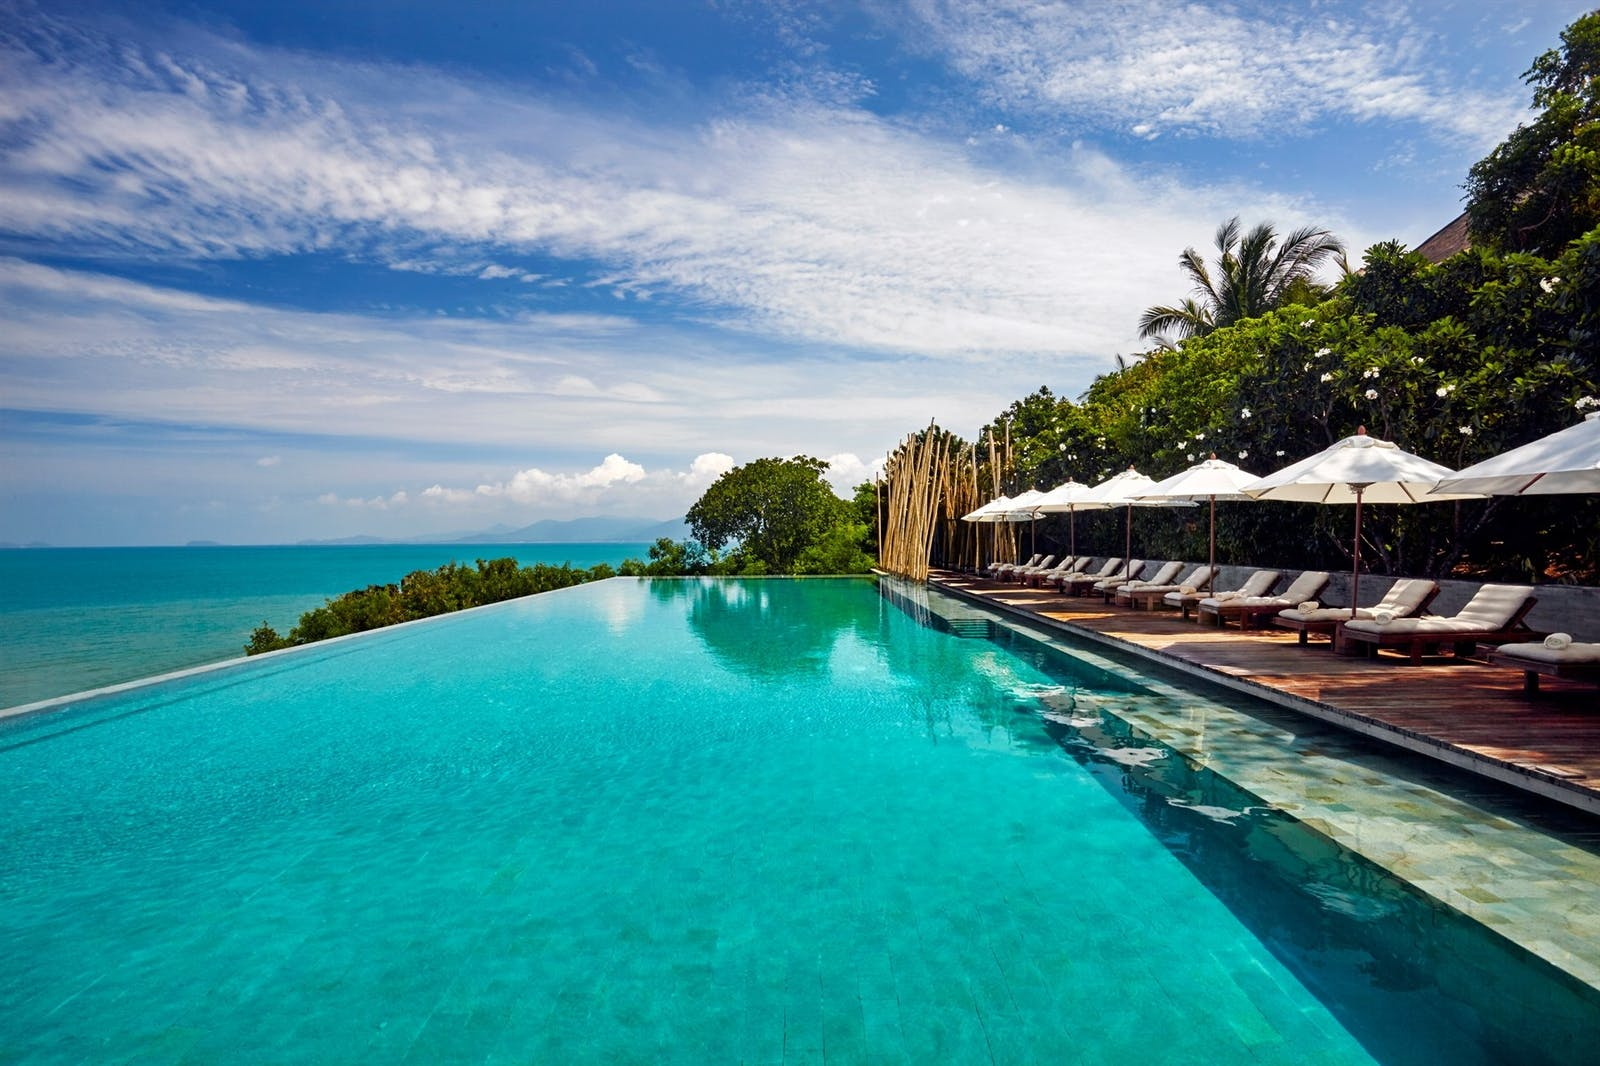 Main pool, Six Senses Samui, Koh Samui, Thailand